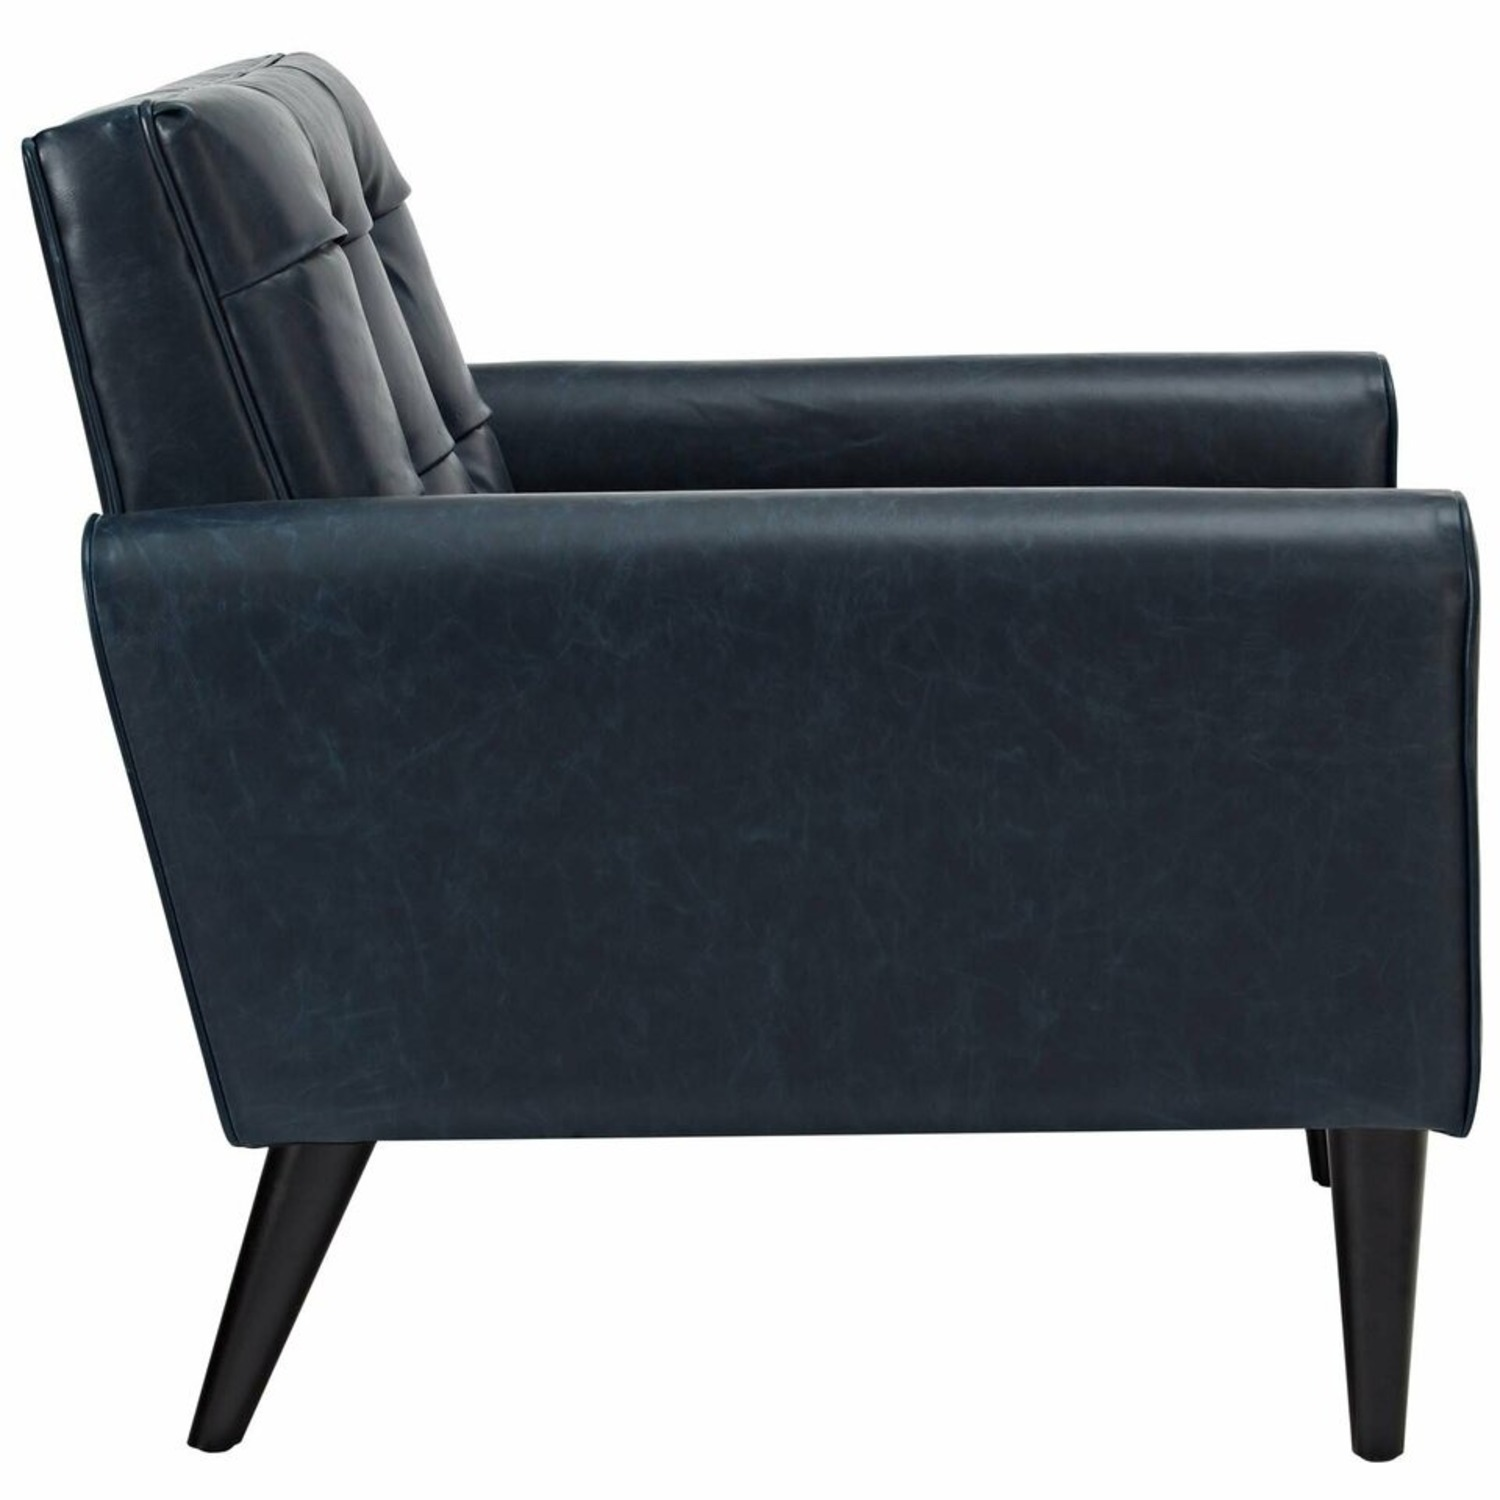 Accent Chair In Blue Vinyl Vegan Leather Finish - image-2